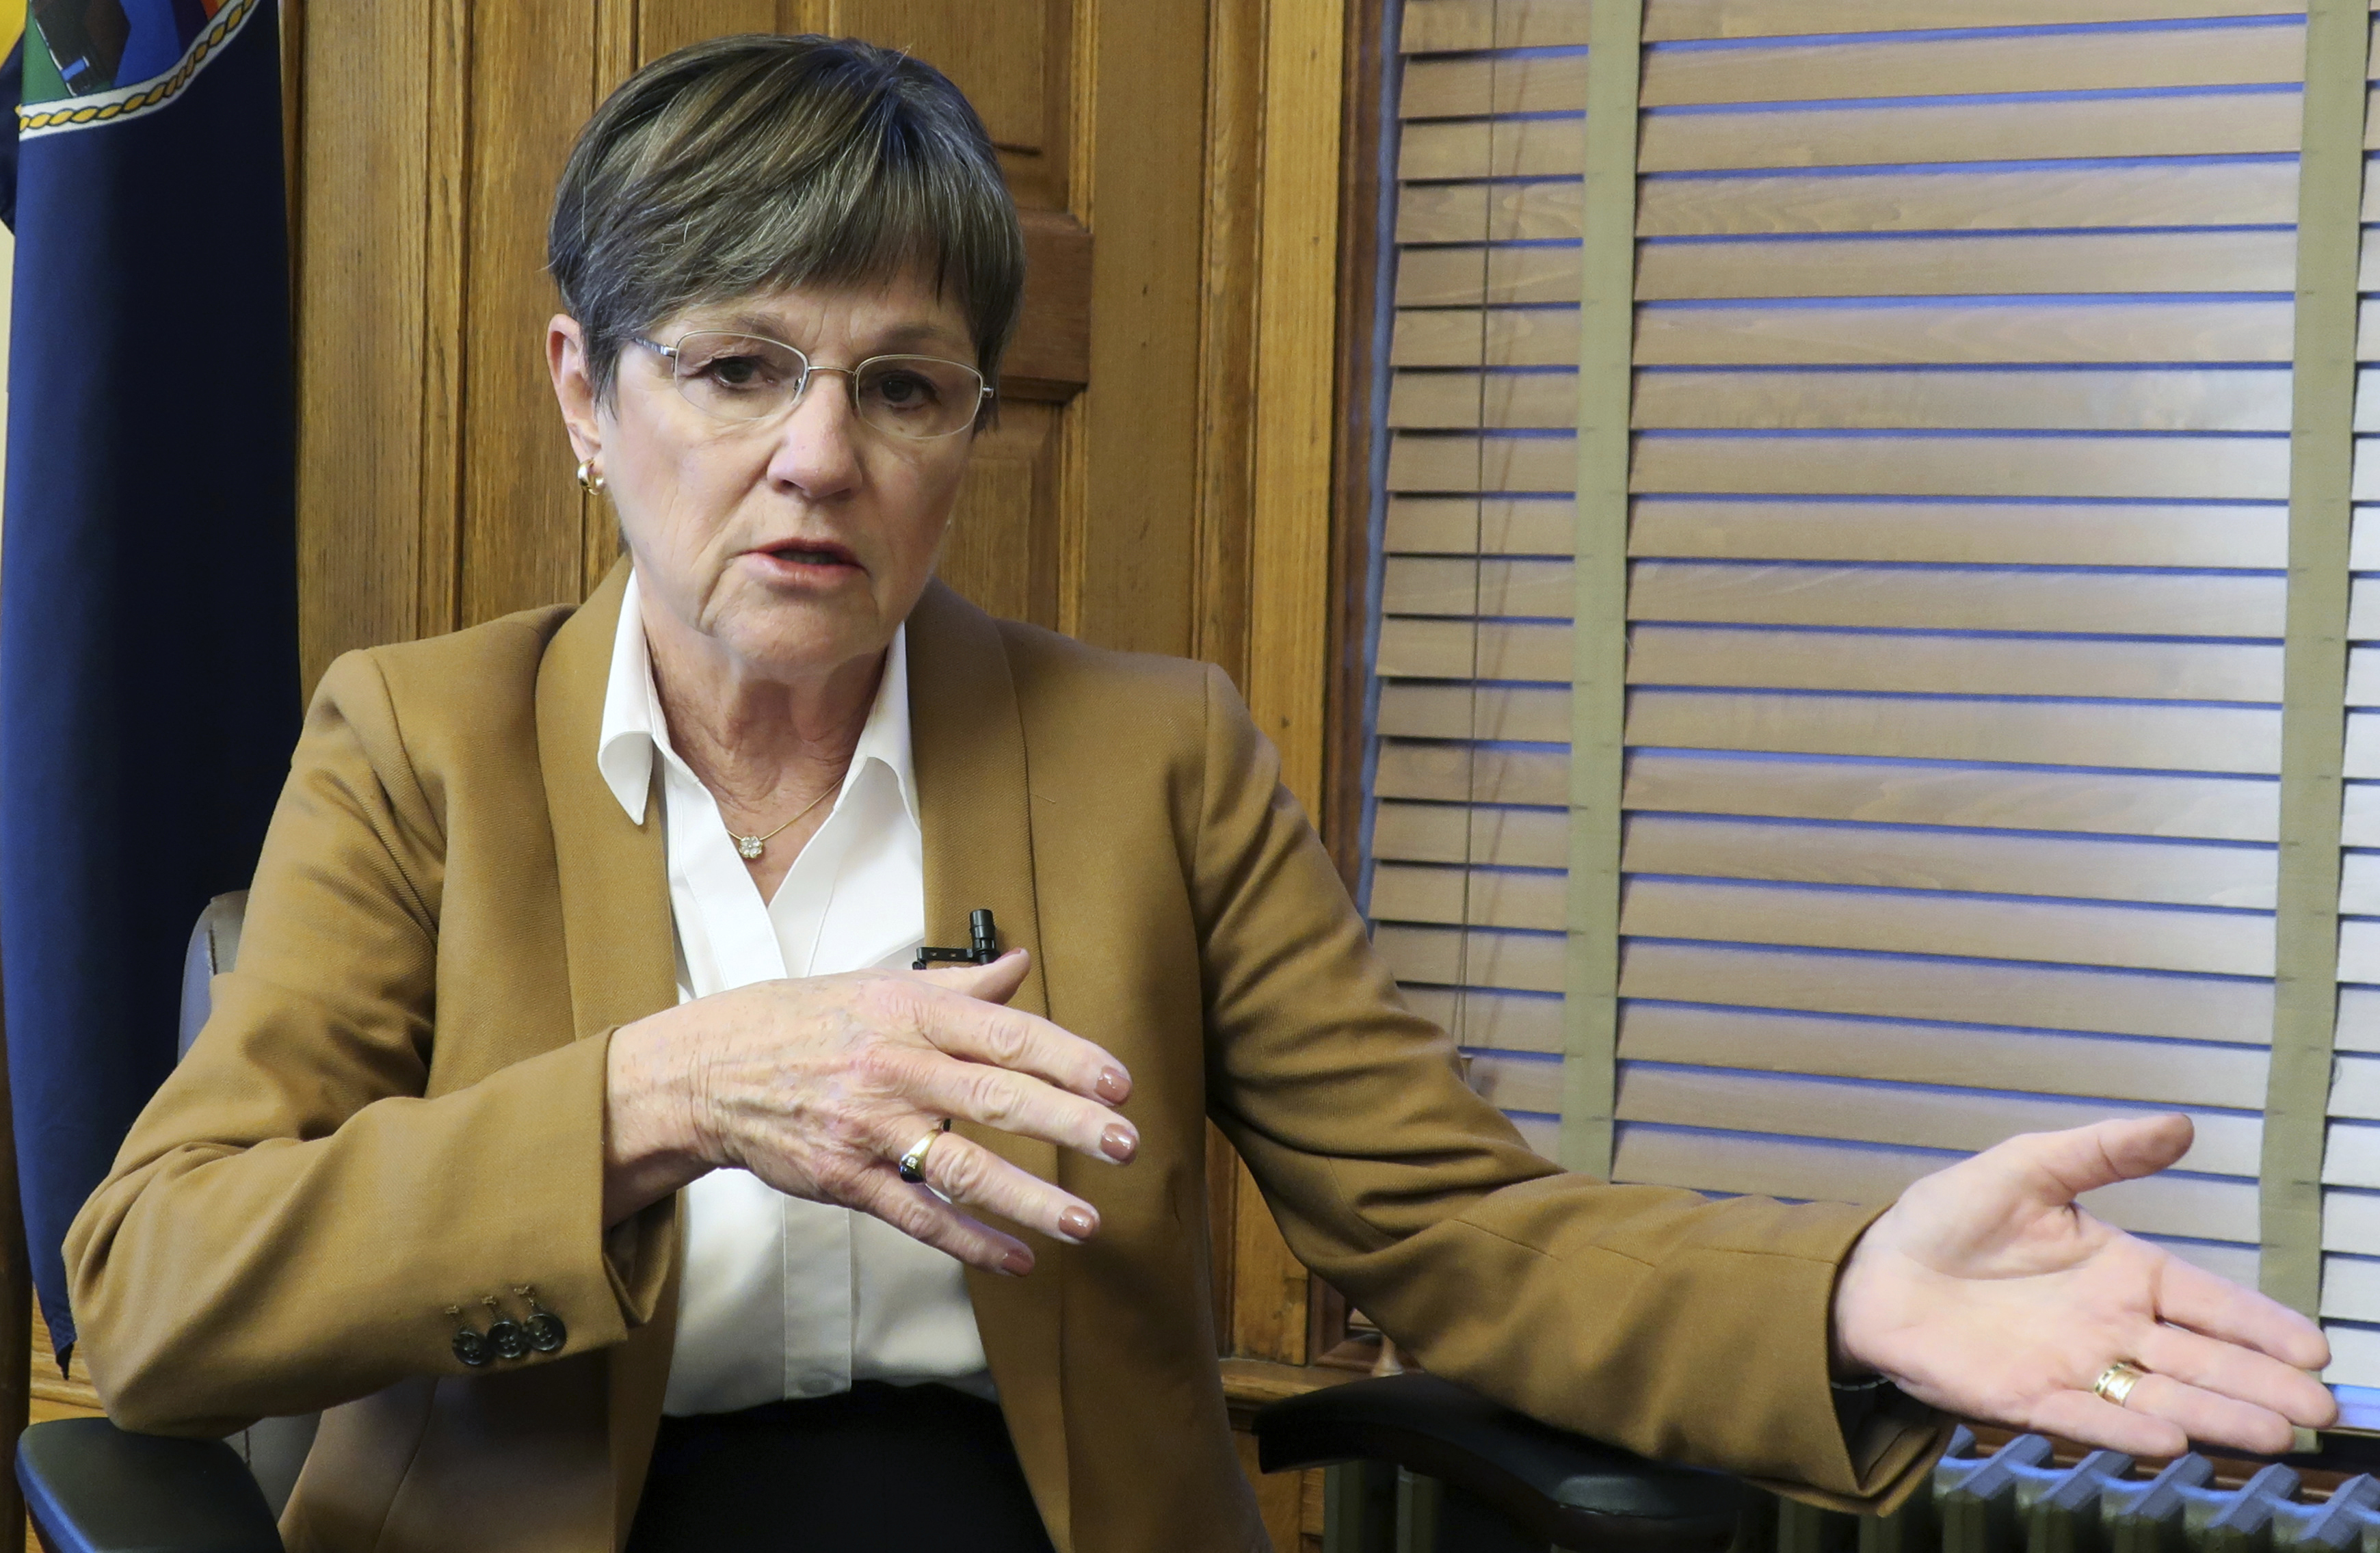 Interim Leader For The Kansas Department Of Corrections Named